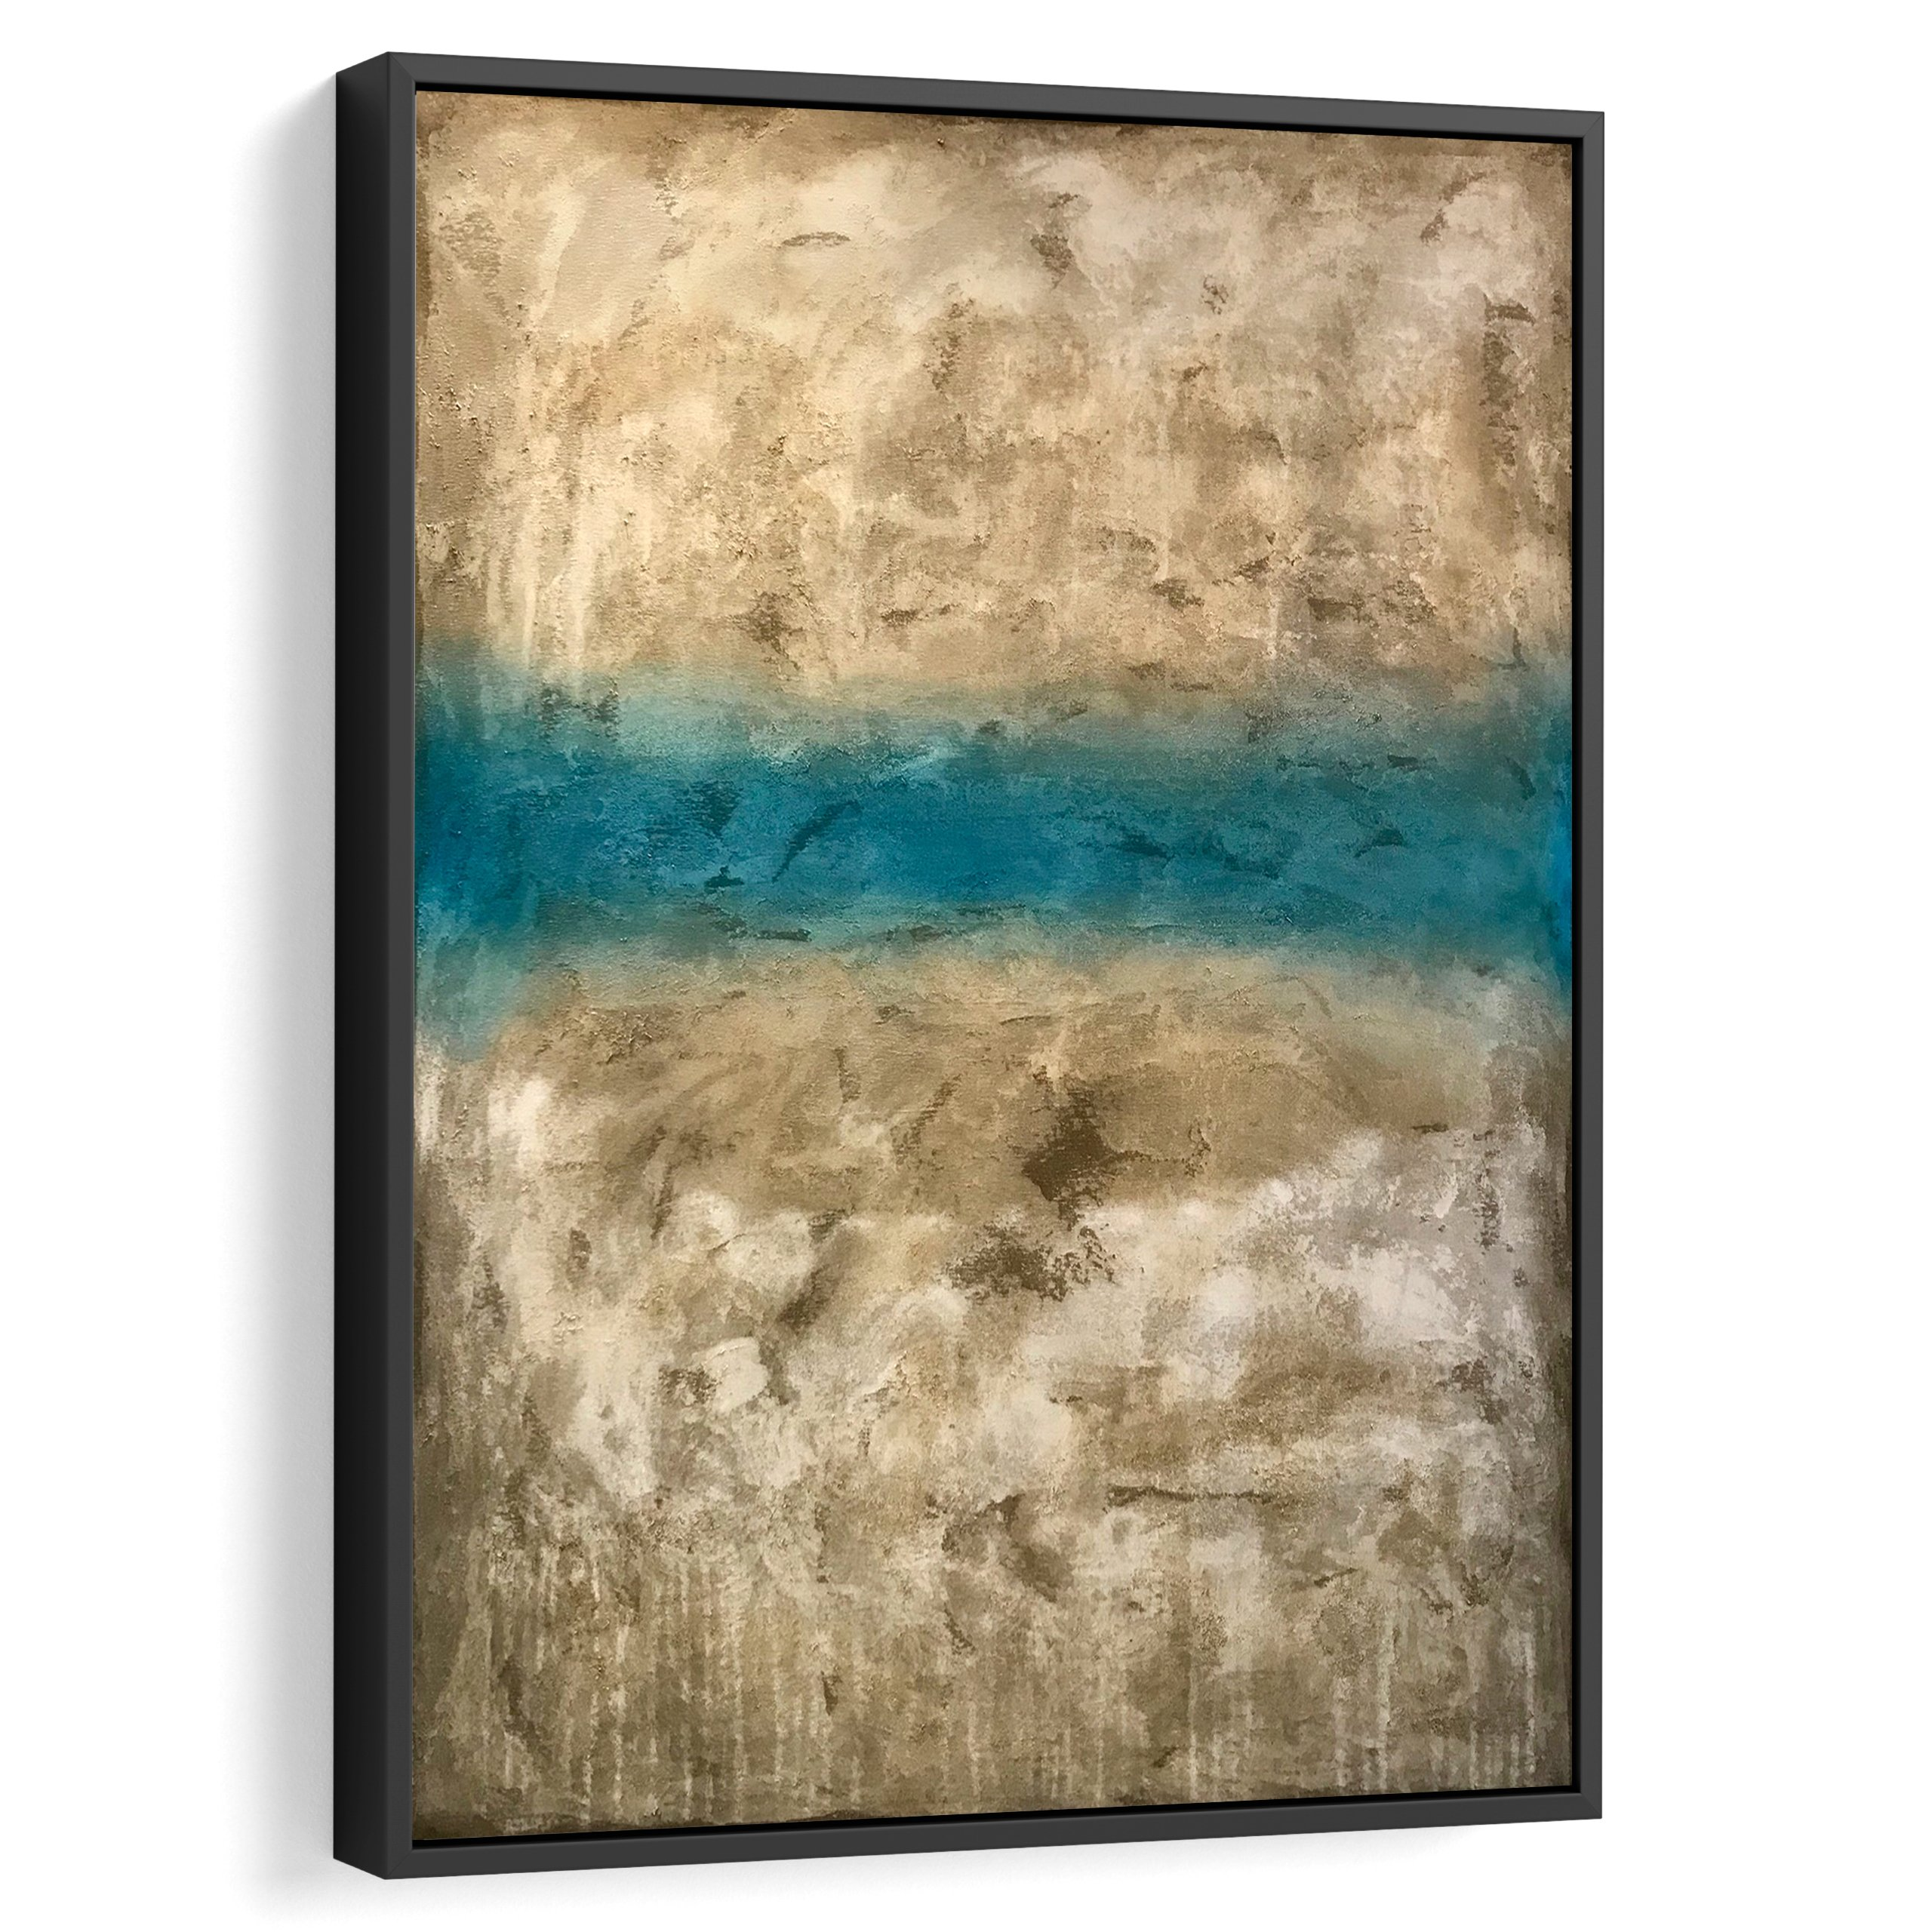 Beige and blue modern art in a black frame 3d view, For wall decoration and interior design